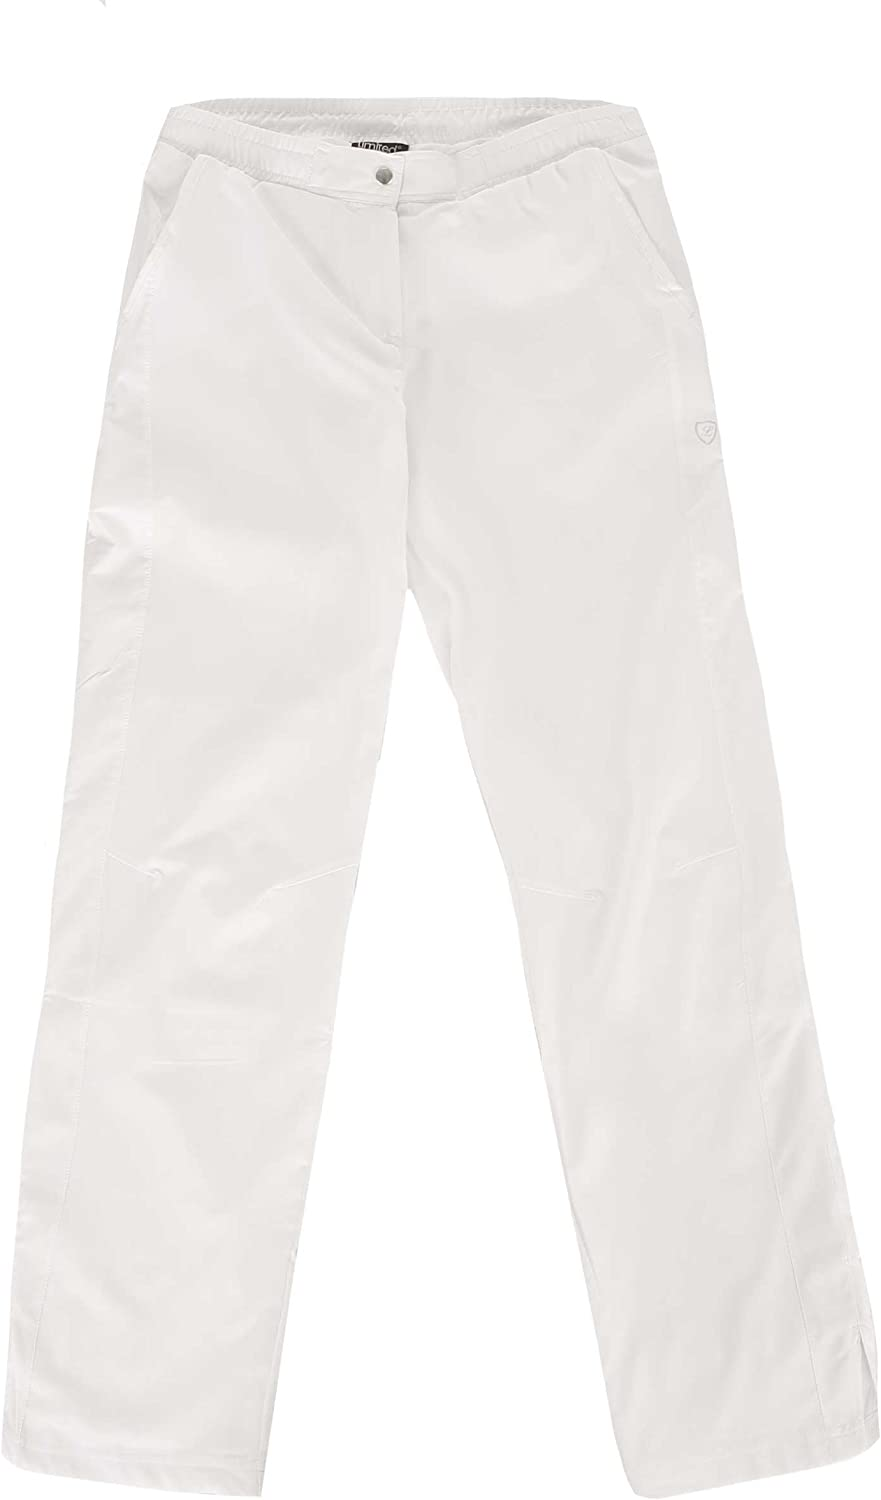 Limited Sports Oberbekleidung Pants Single Classic Stretch Hosen B01C3IBIZM  Mode dynamisch